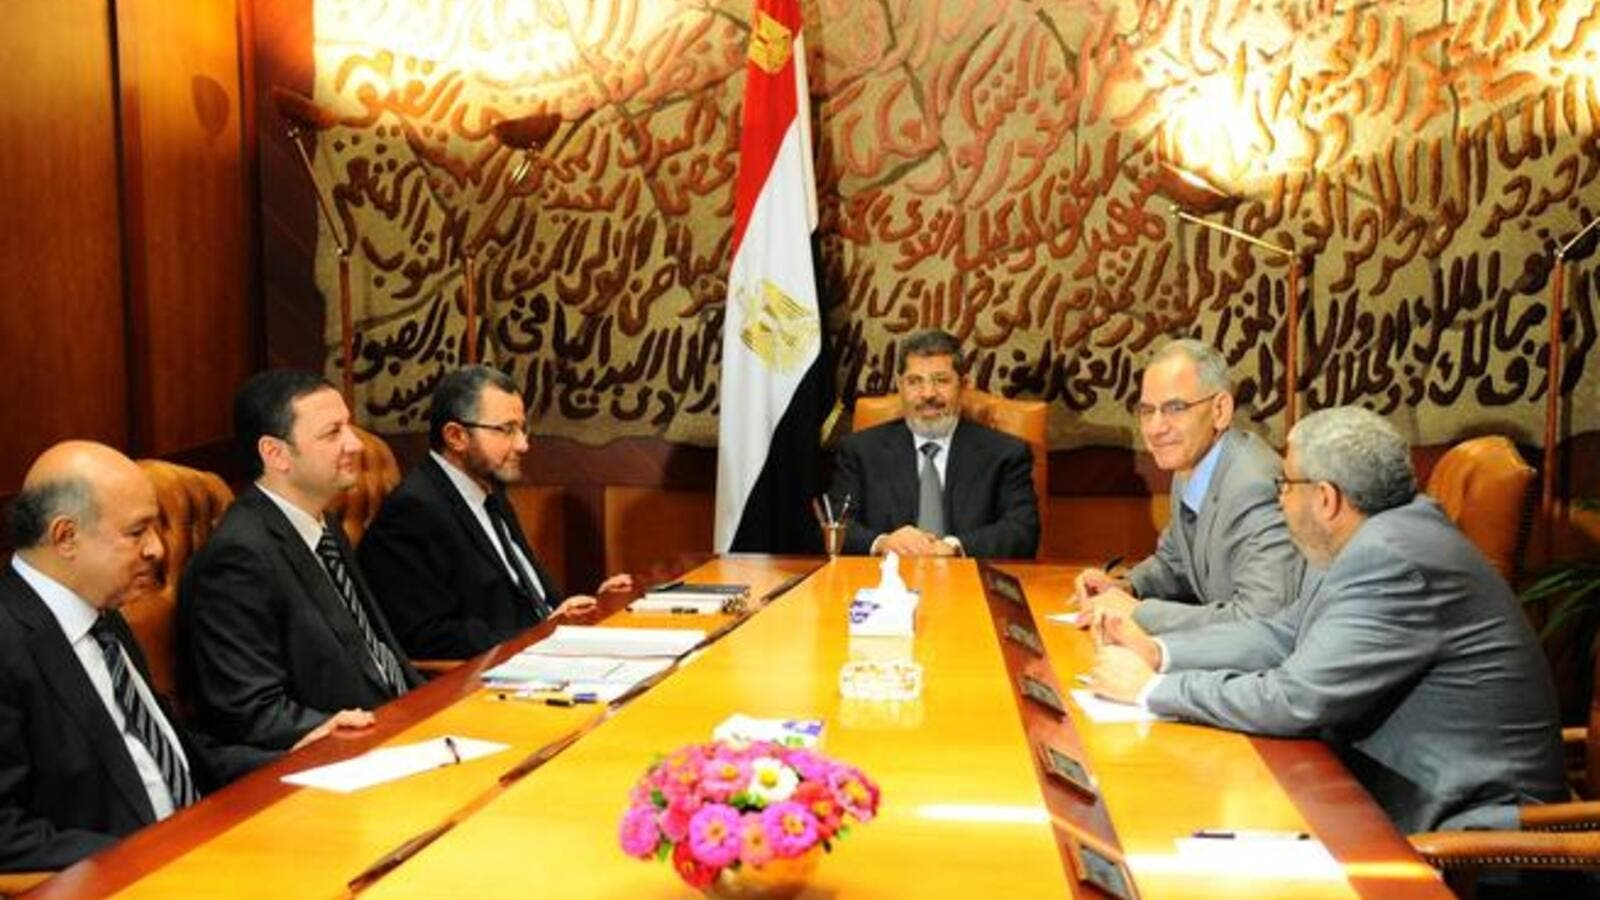 In this handout picture released by the Egyptian Presidency, Egyptian President Mohamed Morsi (C) meets with his prime minister Hisham Kandil (3rd L) and other ministers in Cairo on July 1, 2013.